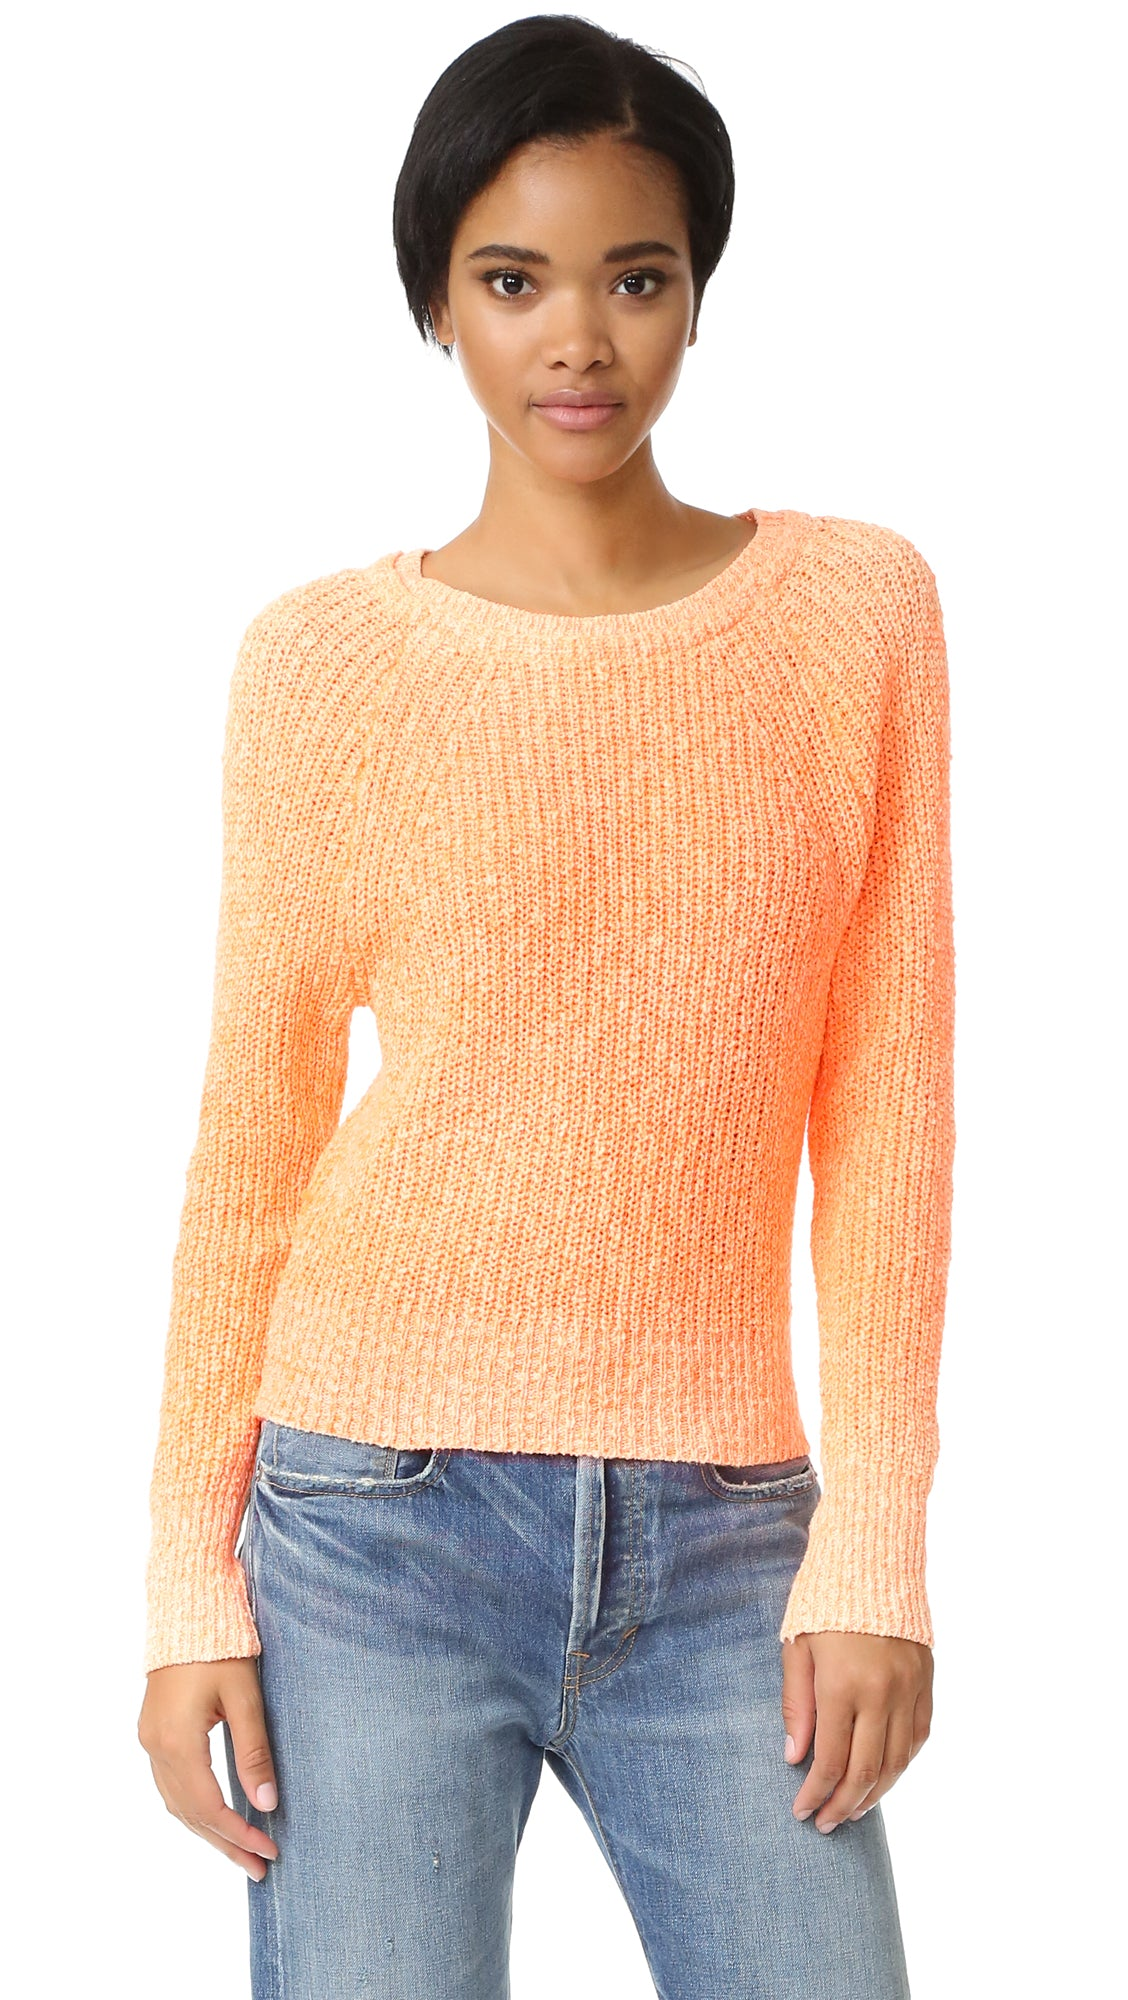 Free People Women's Electric City Pullover Long Sleeve Sweater Tangerine XS